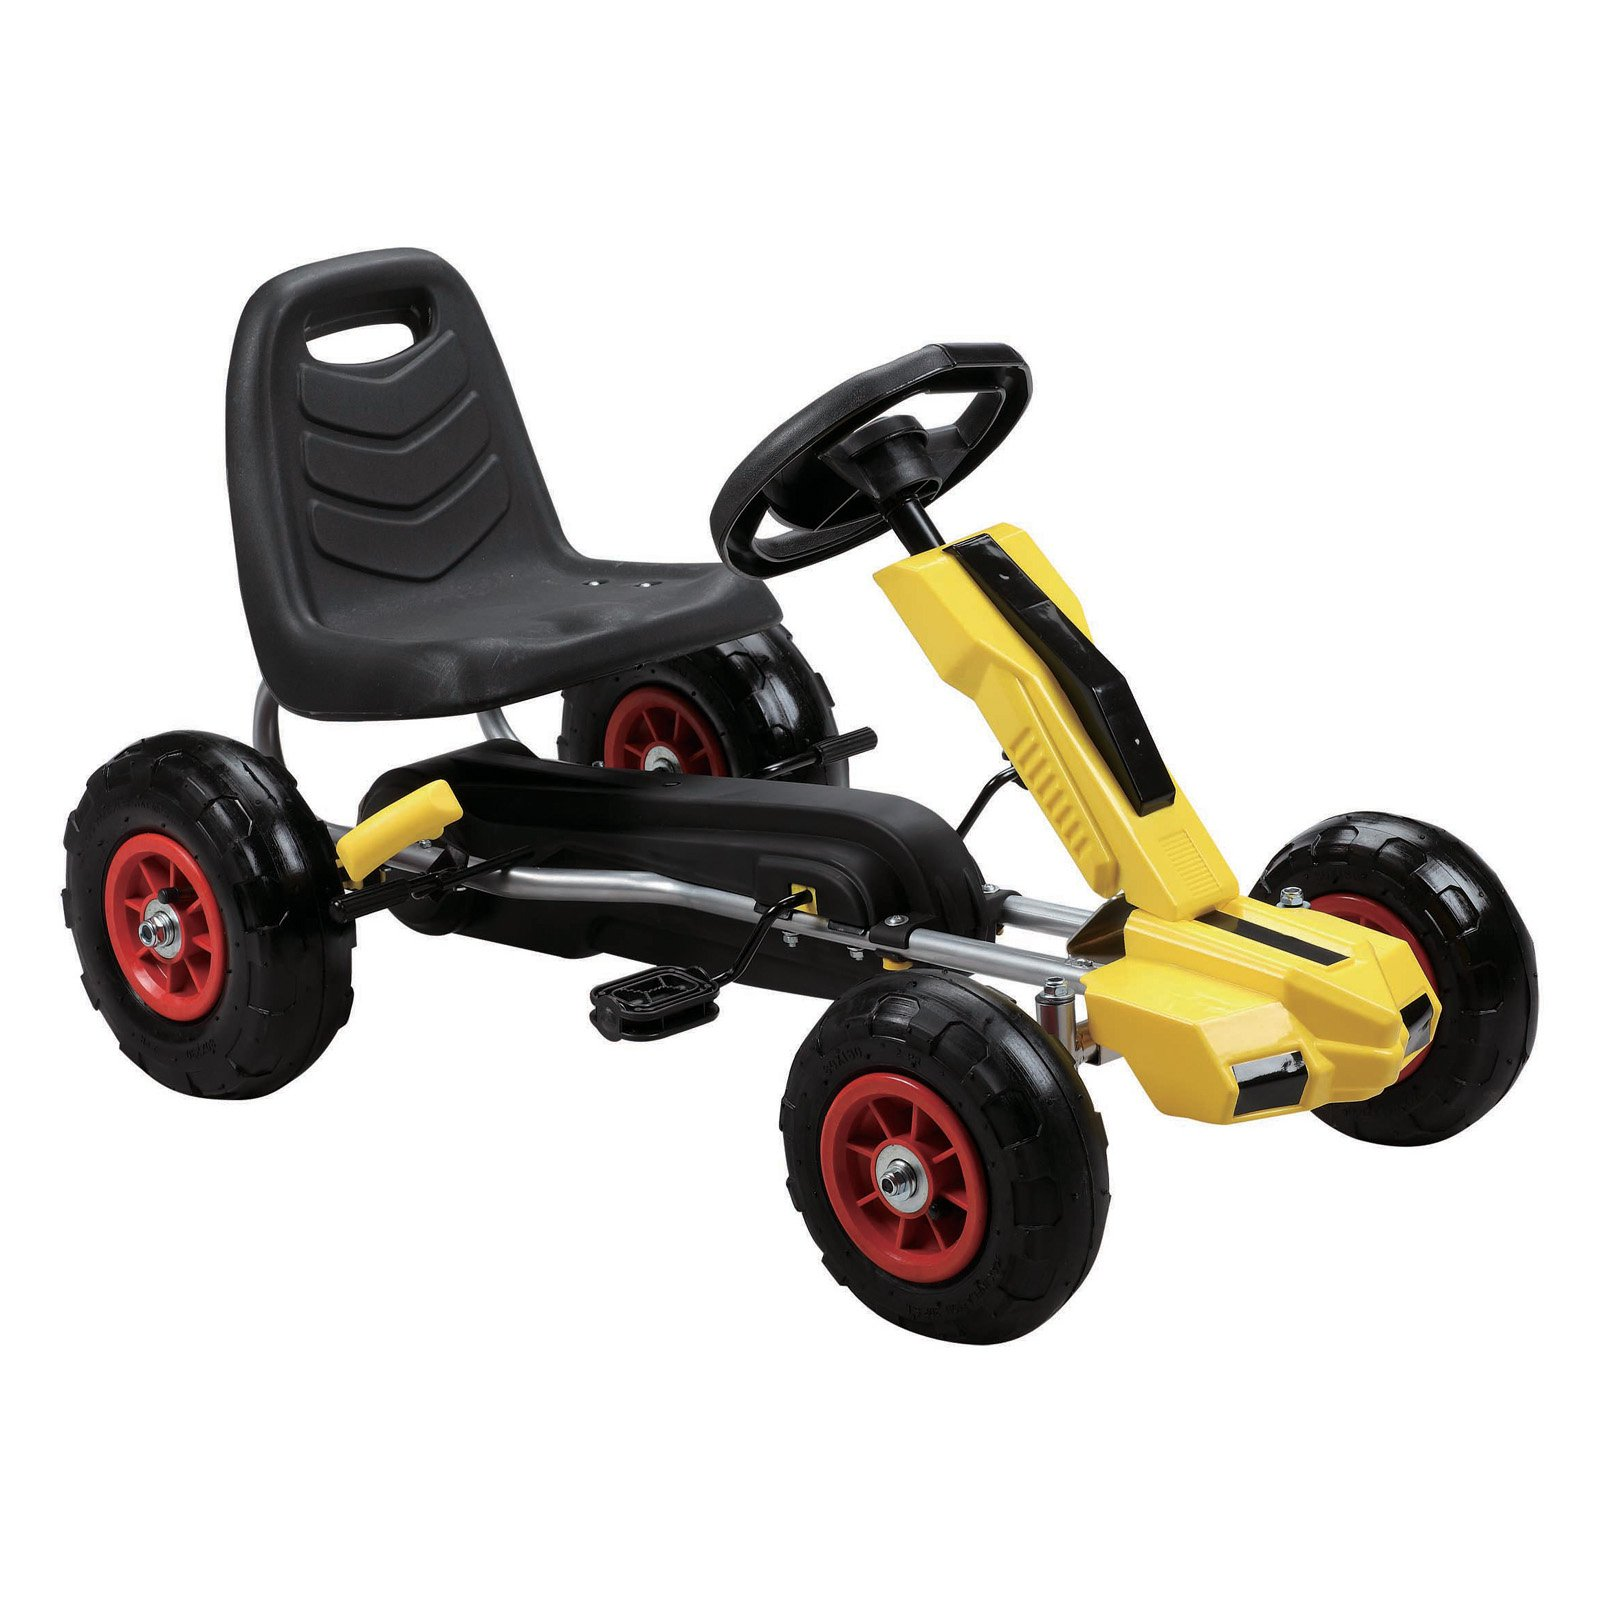 Merske Power Pedal Go-Kart with Pneumatic Tires by Vroom Rider